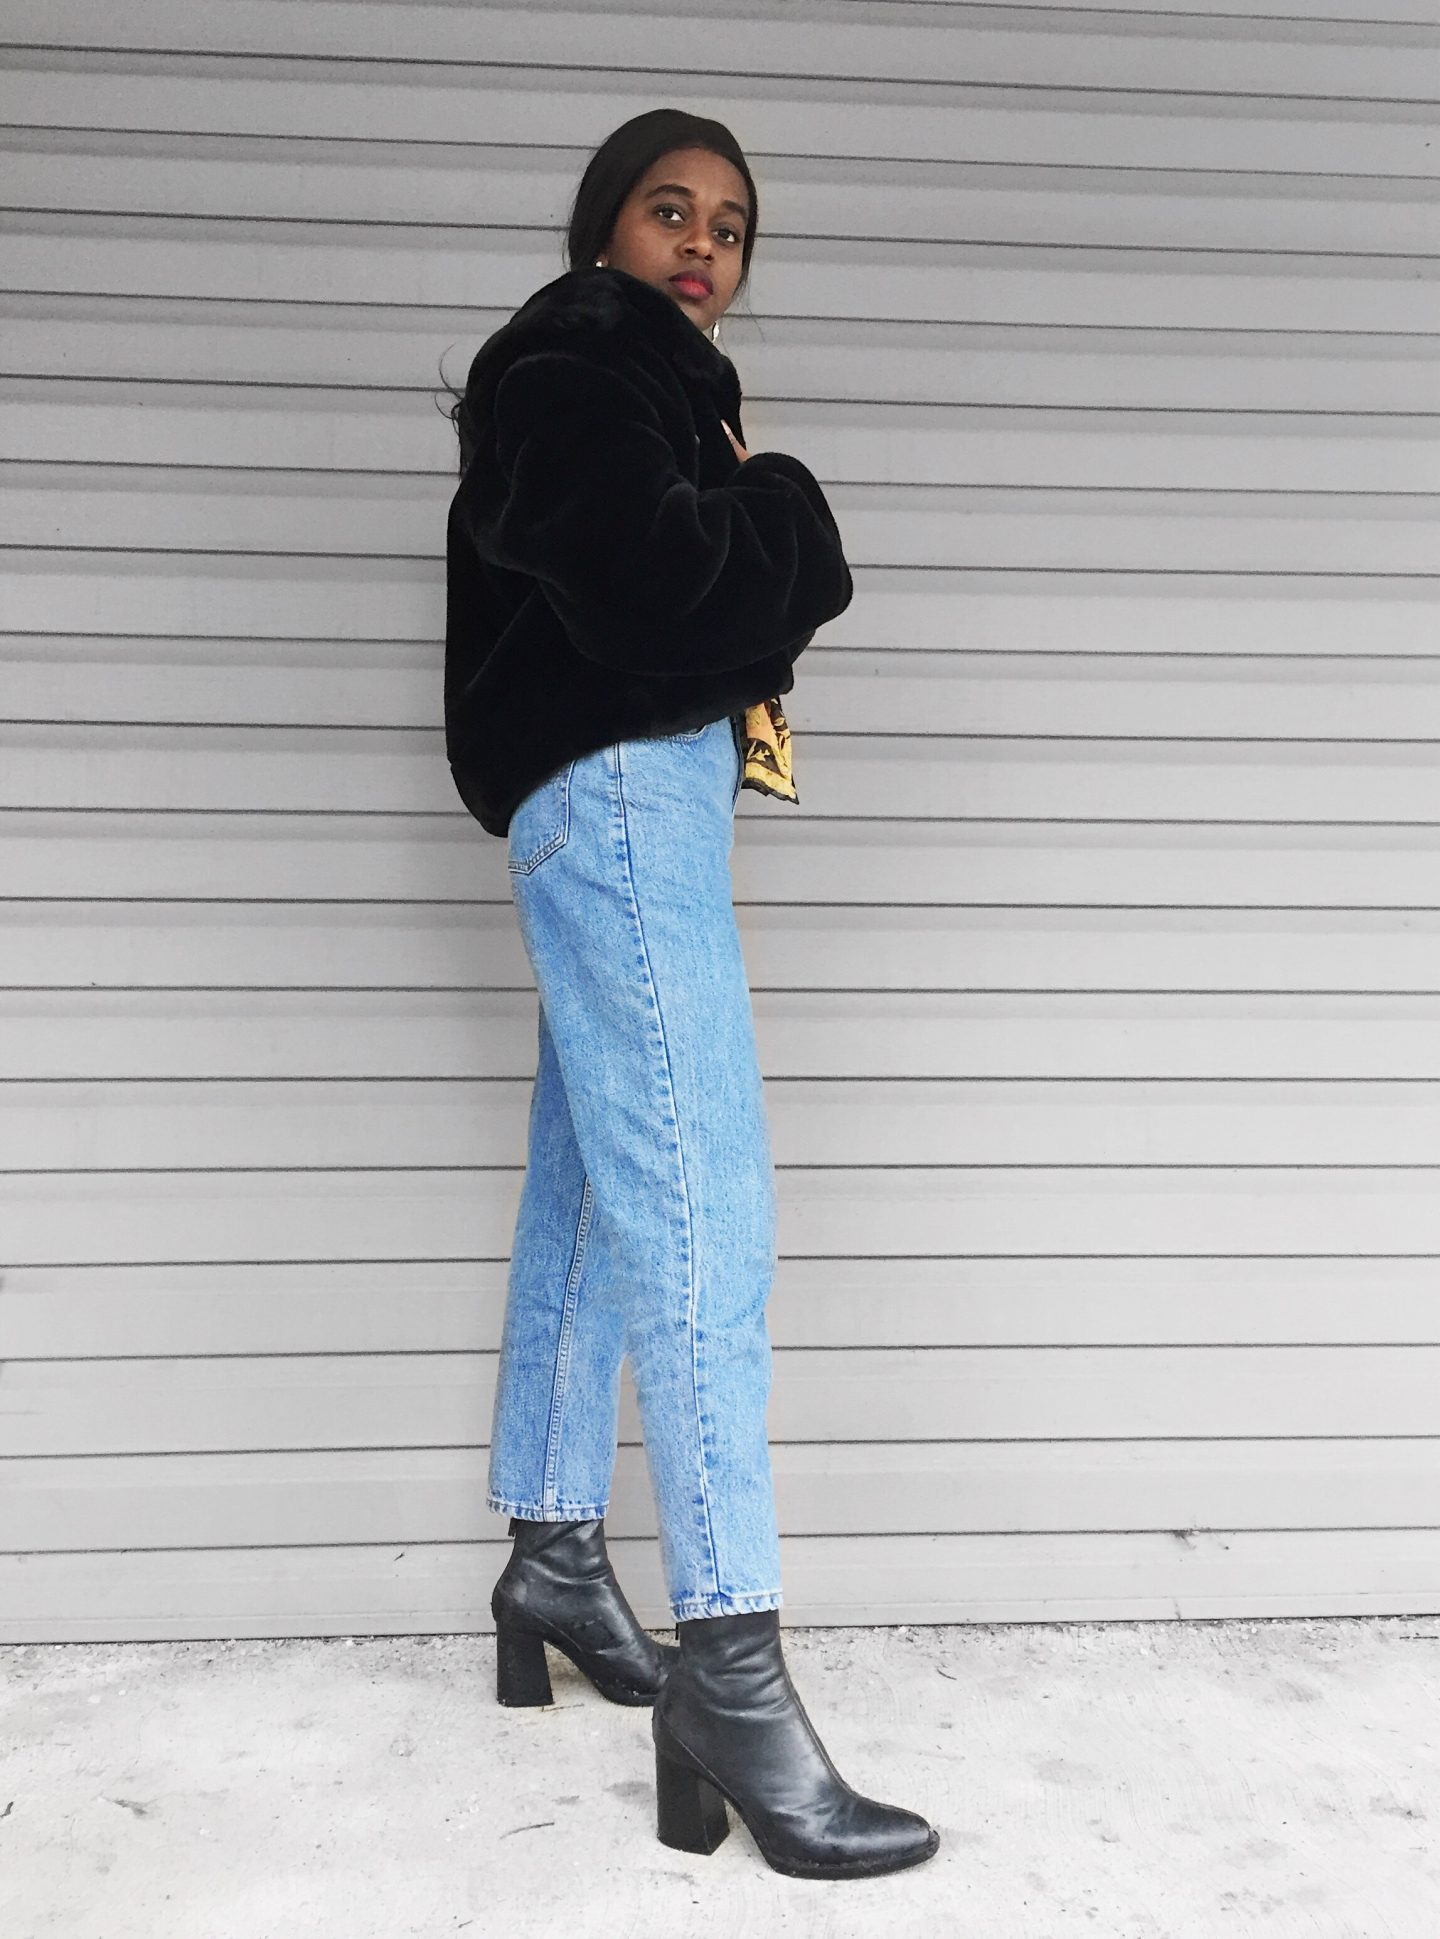 how to style denim jeans, boot cut jeans, straight jeans, mom jeans, boyfriend jeans